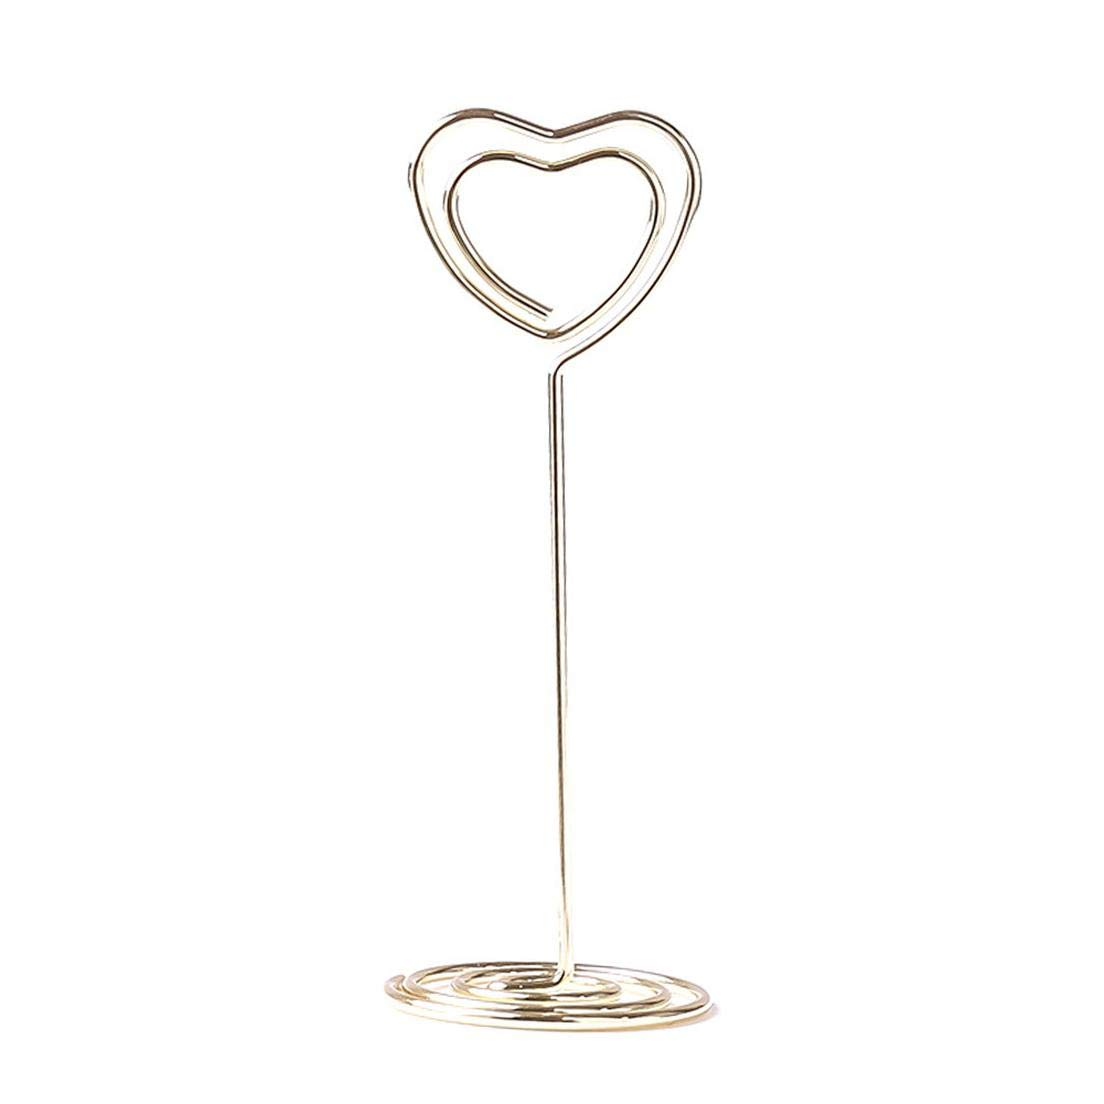 None golden htrdjhrjy Upgraded Version Gold Heart Shape Photo Holder Stands Table Number Holders Place Card Paper Menu Clips Weddings 12 Pack for Home Decoration